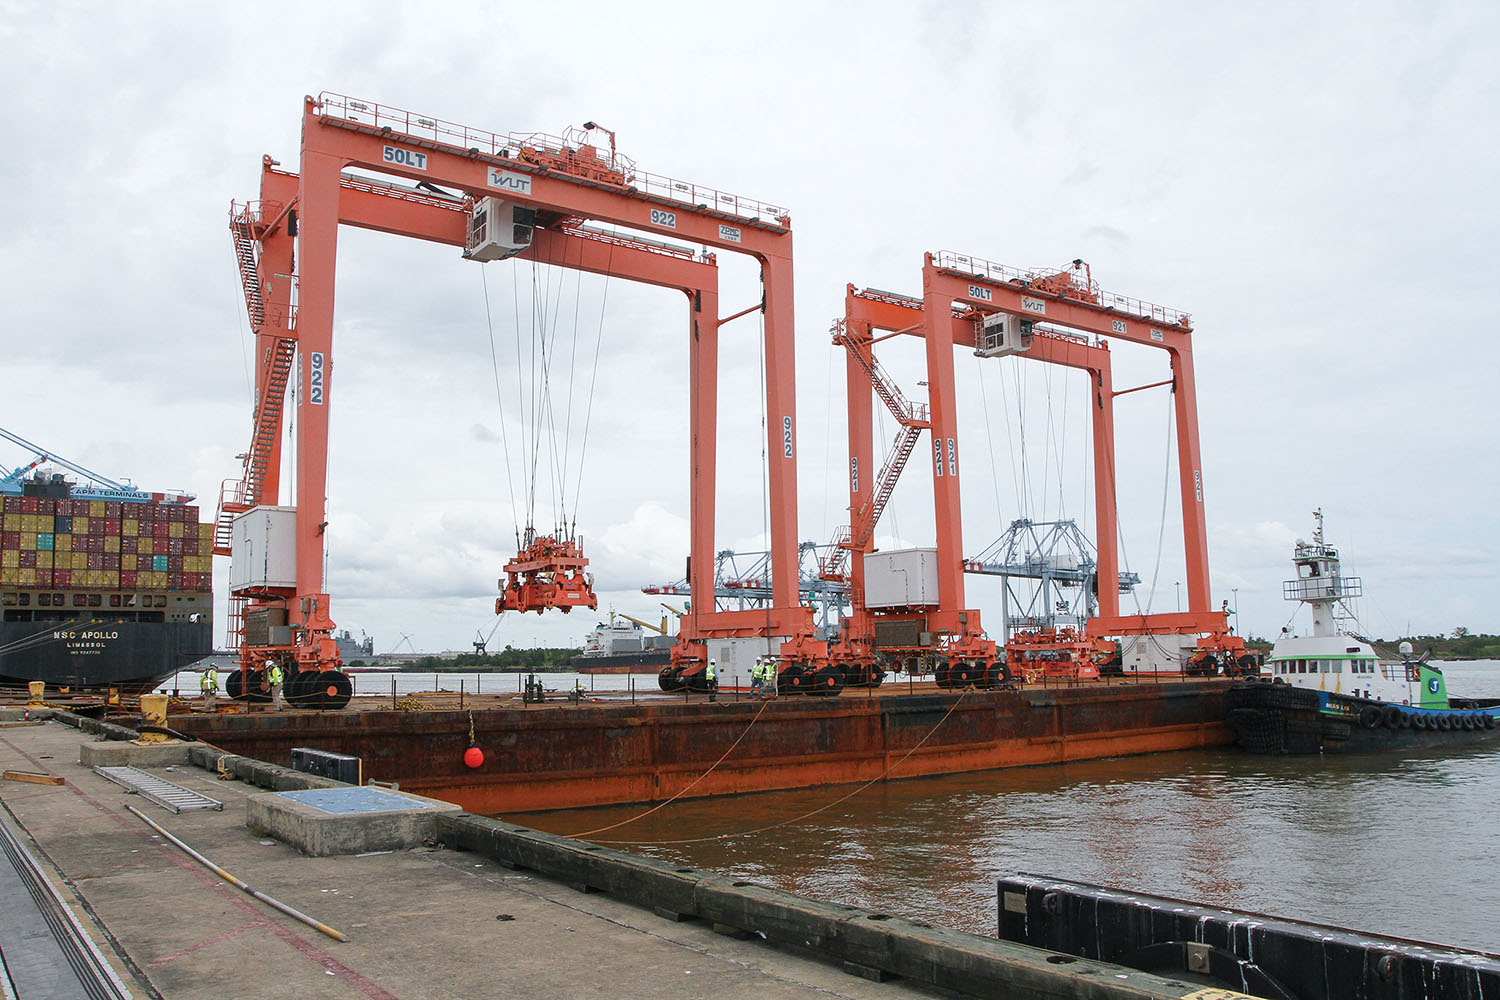 APM Terminals Mobile took delivery August 26 of two rubber tire gantry cranes to support growth at the port's intermodal container transfer facility. (Photo courtesy of Alabama State Port Authority)